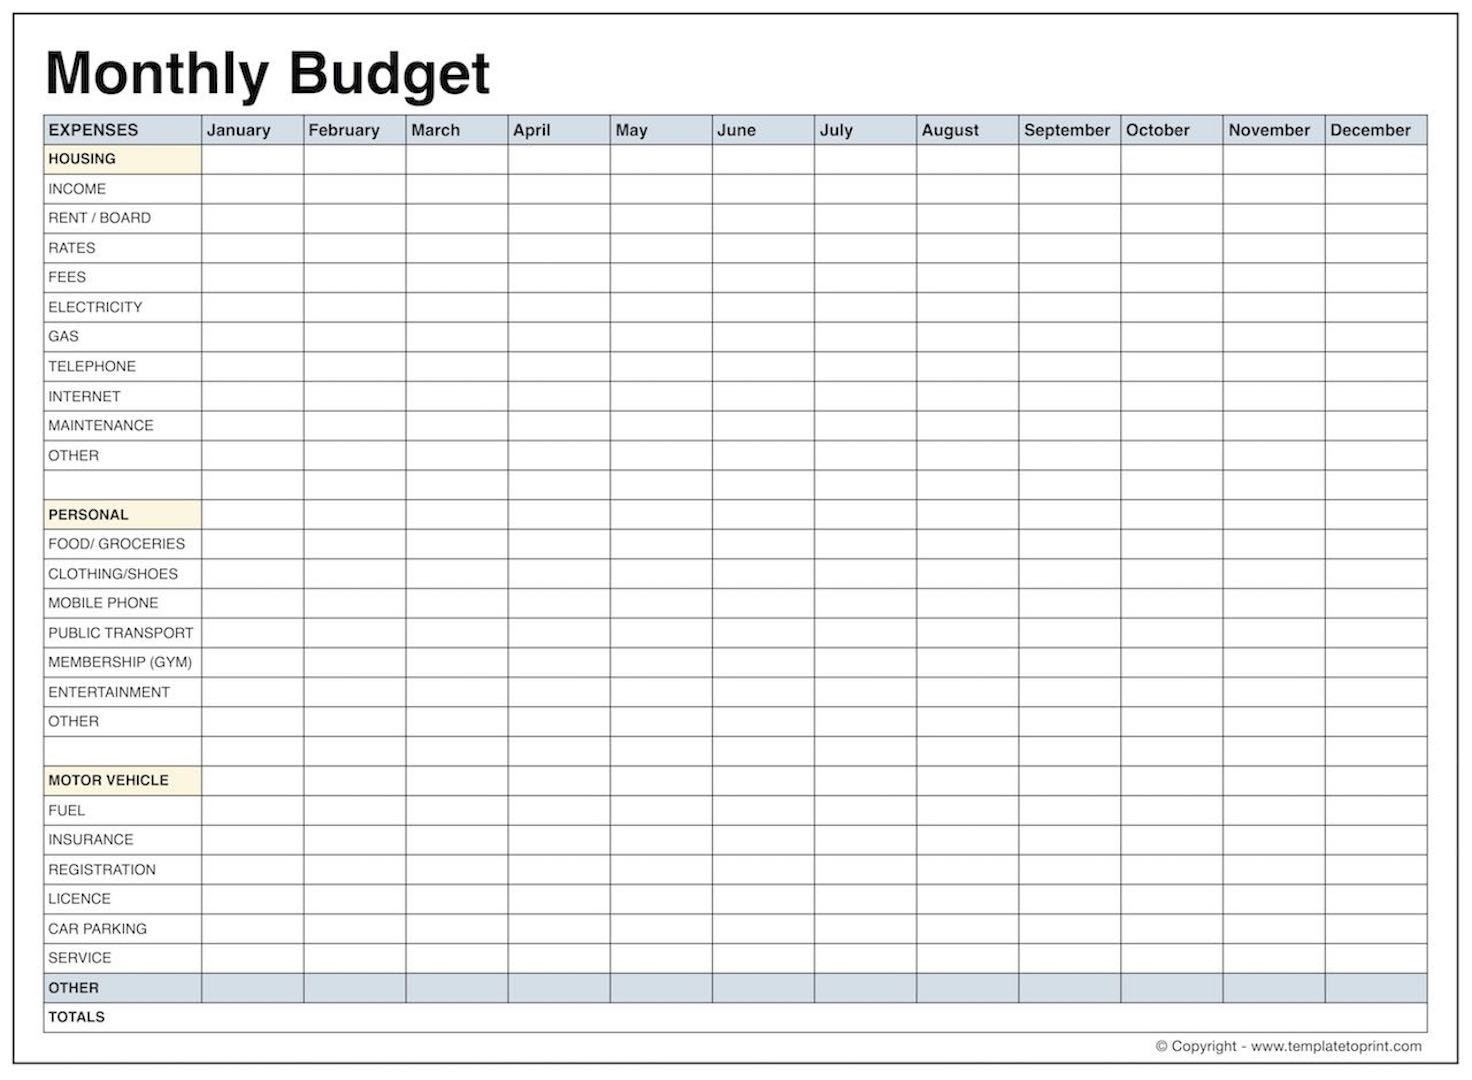 Printable Monthly Budget Template Blank Latter Day Depiction - Free Printable Monthly Budget